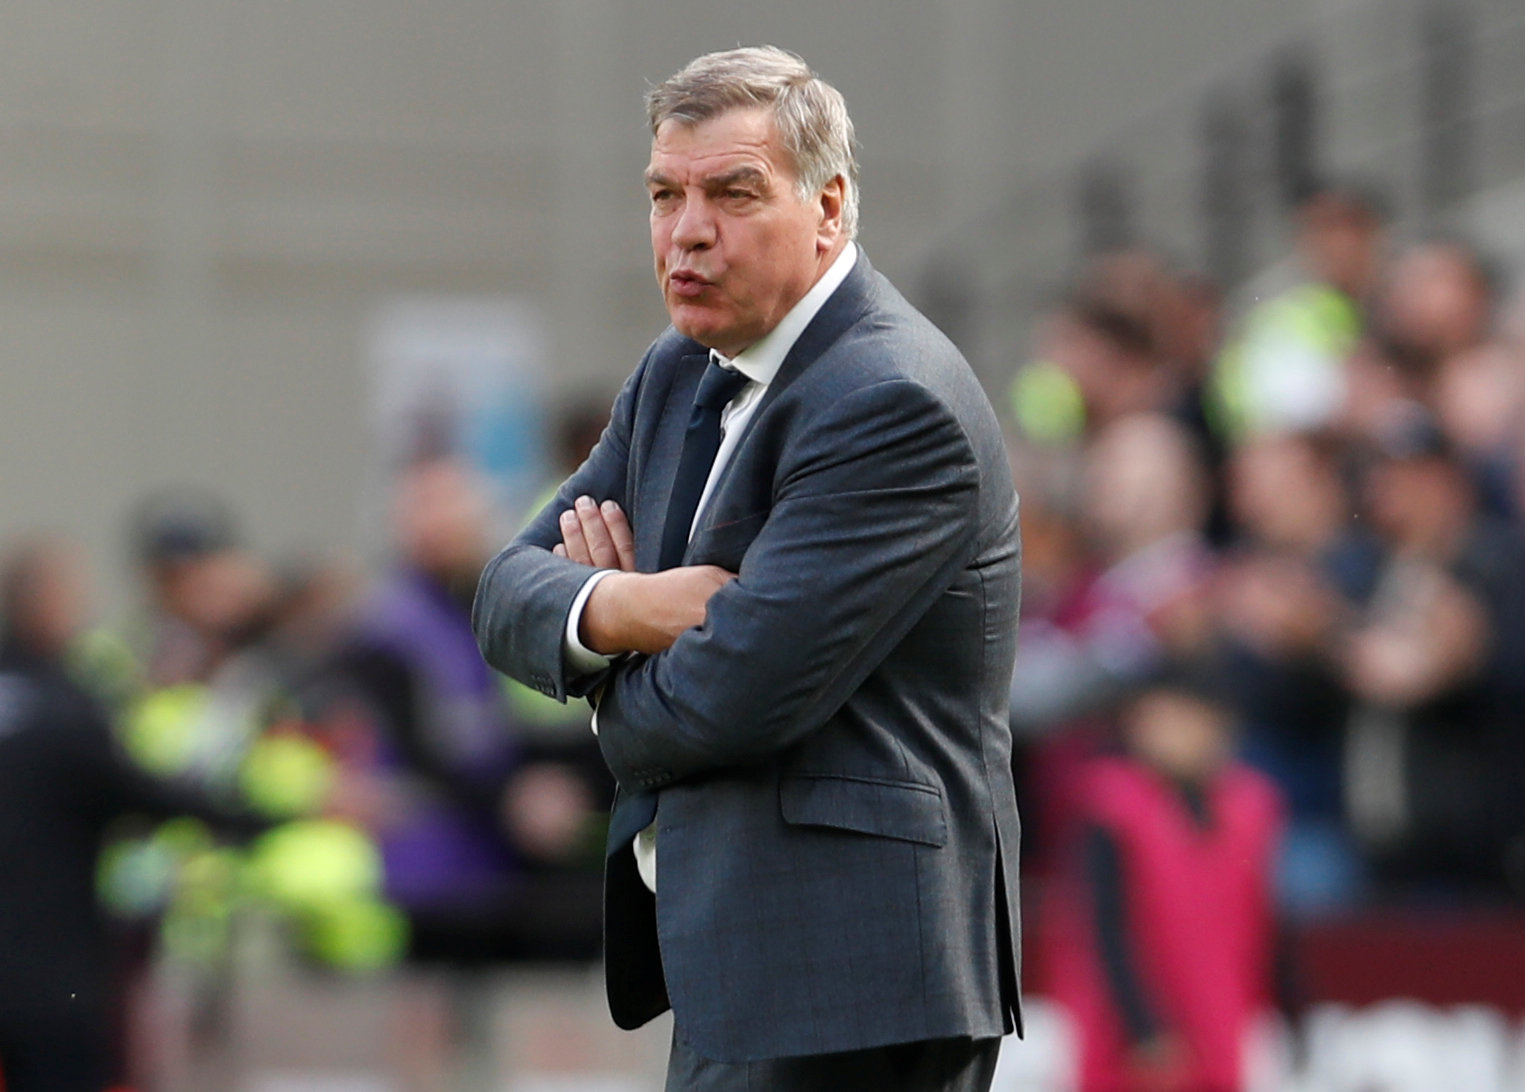 Former Hammers boss Sam Allardyce. Picture: Action Images